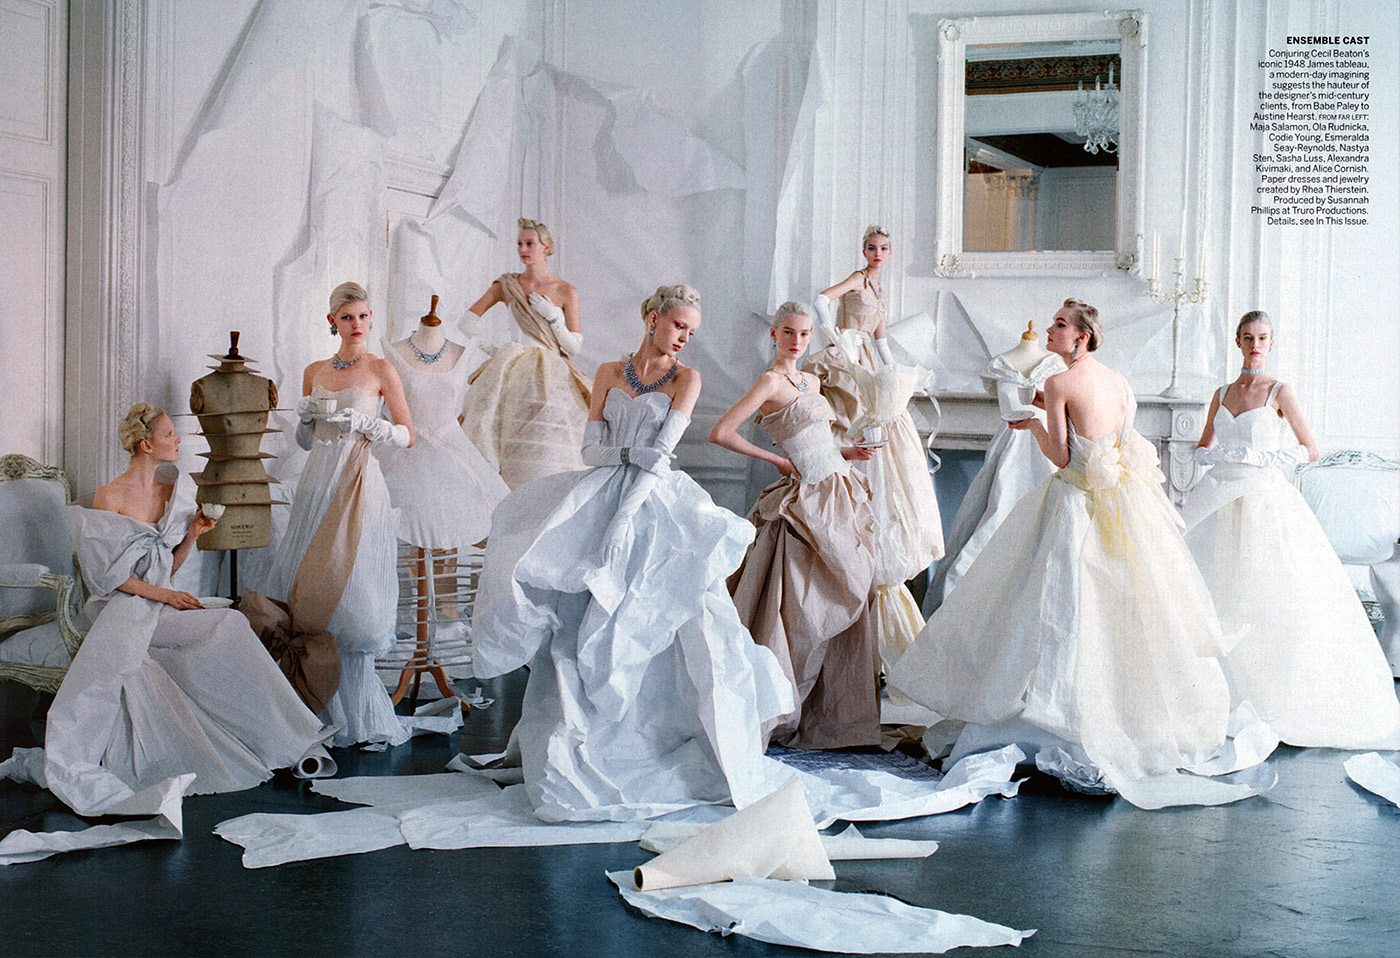 1-MAJA_SALAMON_OLA_RUDNICKA_ESMERELDA_SEAY_REYNOLDS_VOGUE_MAY_2014_TIM_WALKER